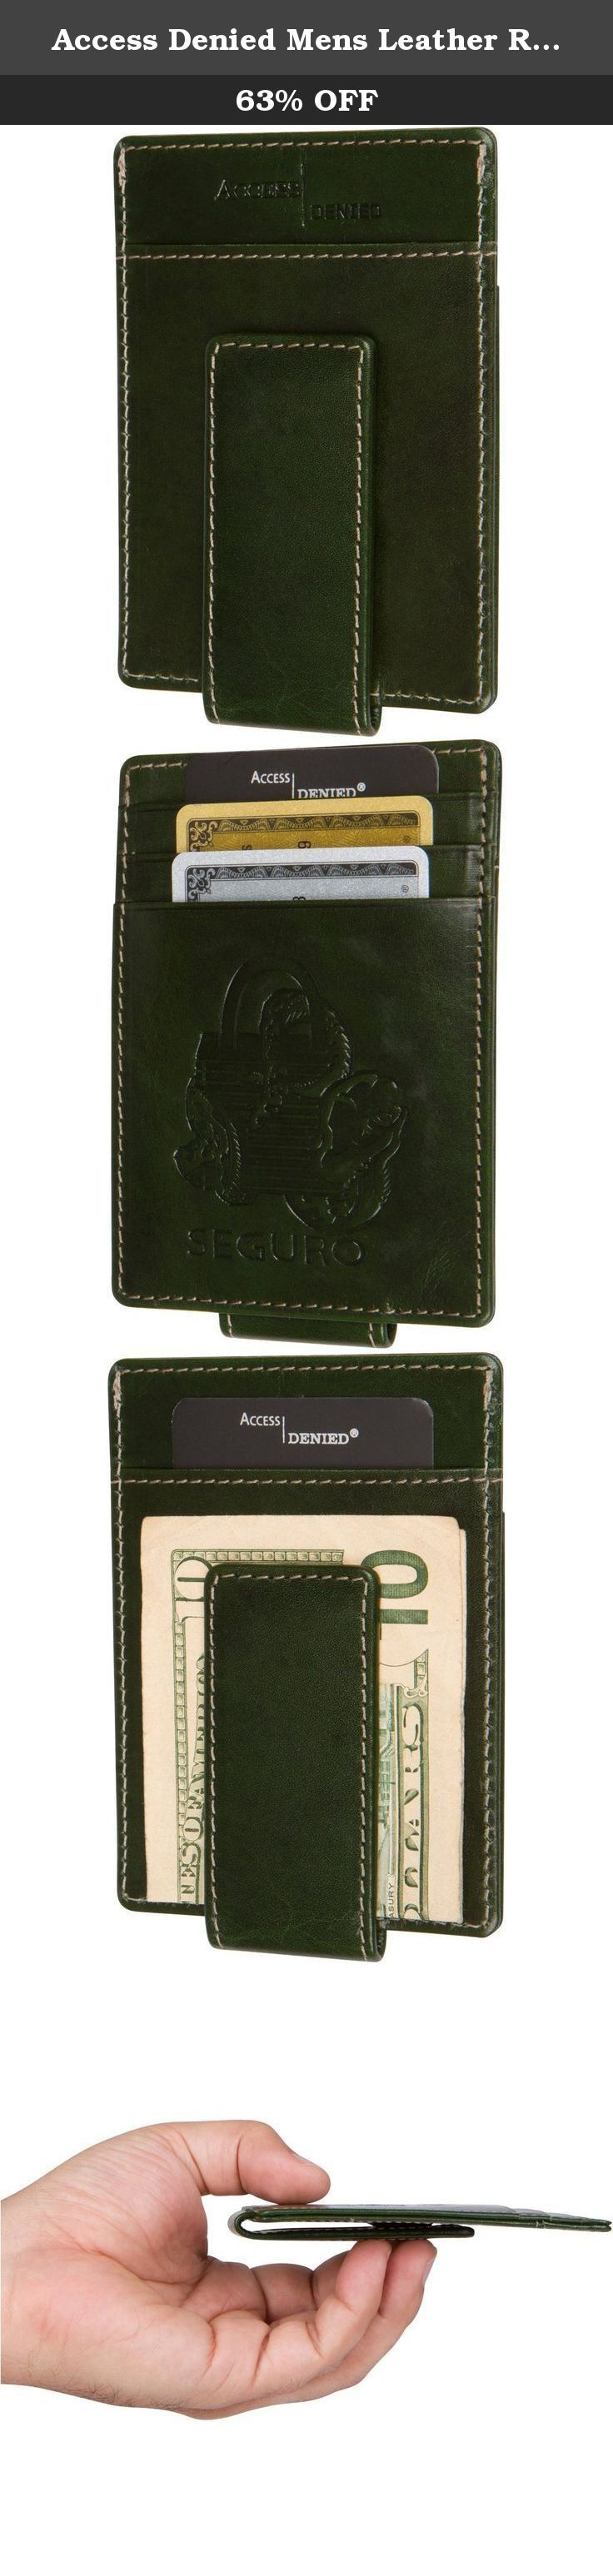 Access Denied Mens Leather RFID Front Pocket Wallet Slim Money Clip Magnetic Minimalist Wallet (Deep Jade). This Minimalist Front Pocket RFID Blocking Magnetic Money Clip wallet is perfect for those who appreciate simple yet effective designs. Carry up to 4 Cards and easily access your cash. SEGURO by Access Denied Money Clip Front Pocket Wallet is made in a beautiful leather that is 100% Genuine, and stained with a glossy finish giving it a luxurious look and feel. With its minimalist...